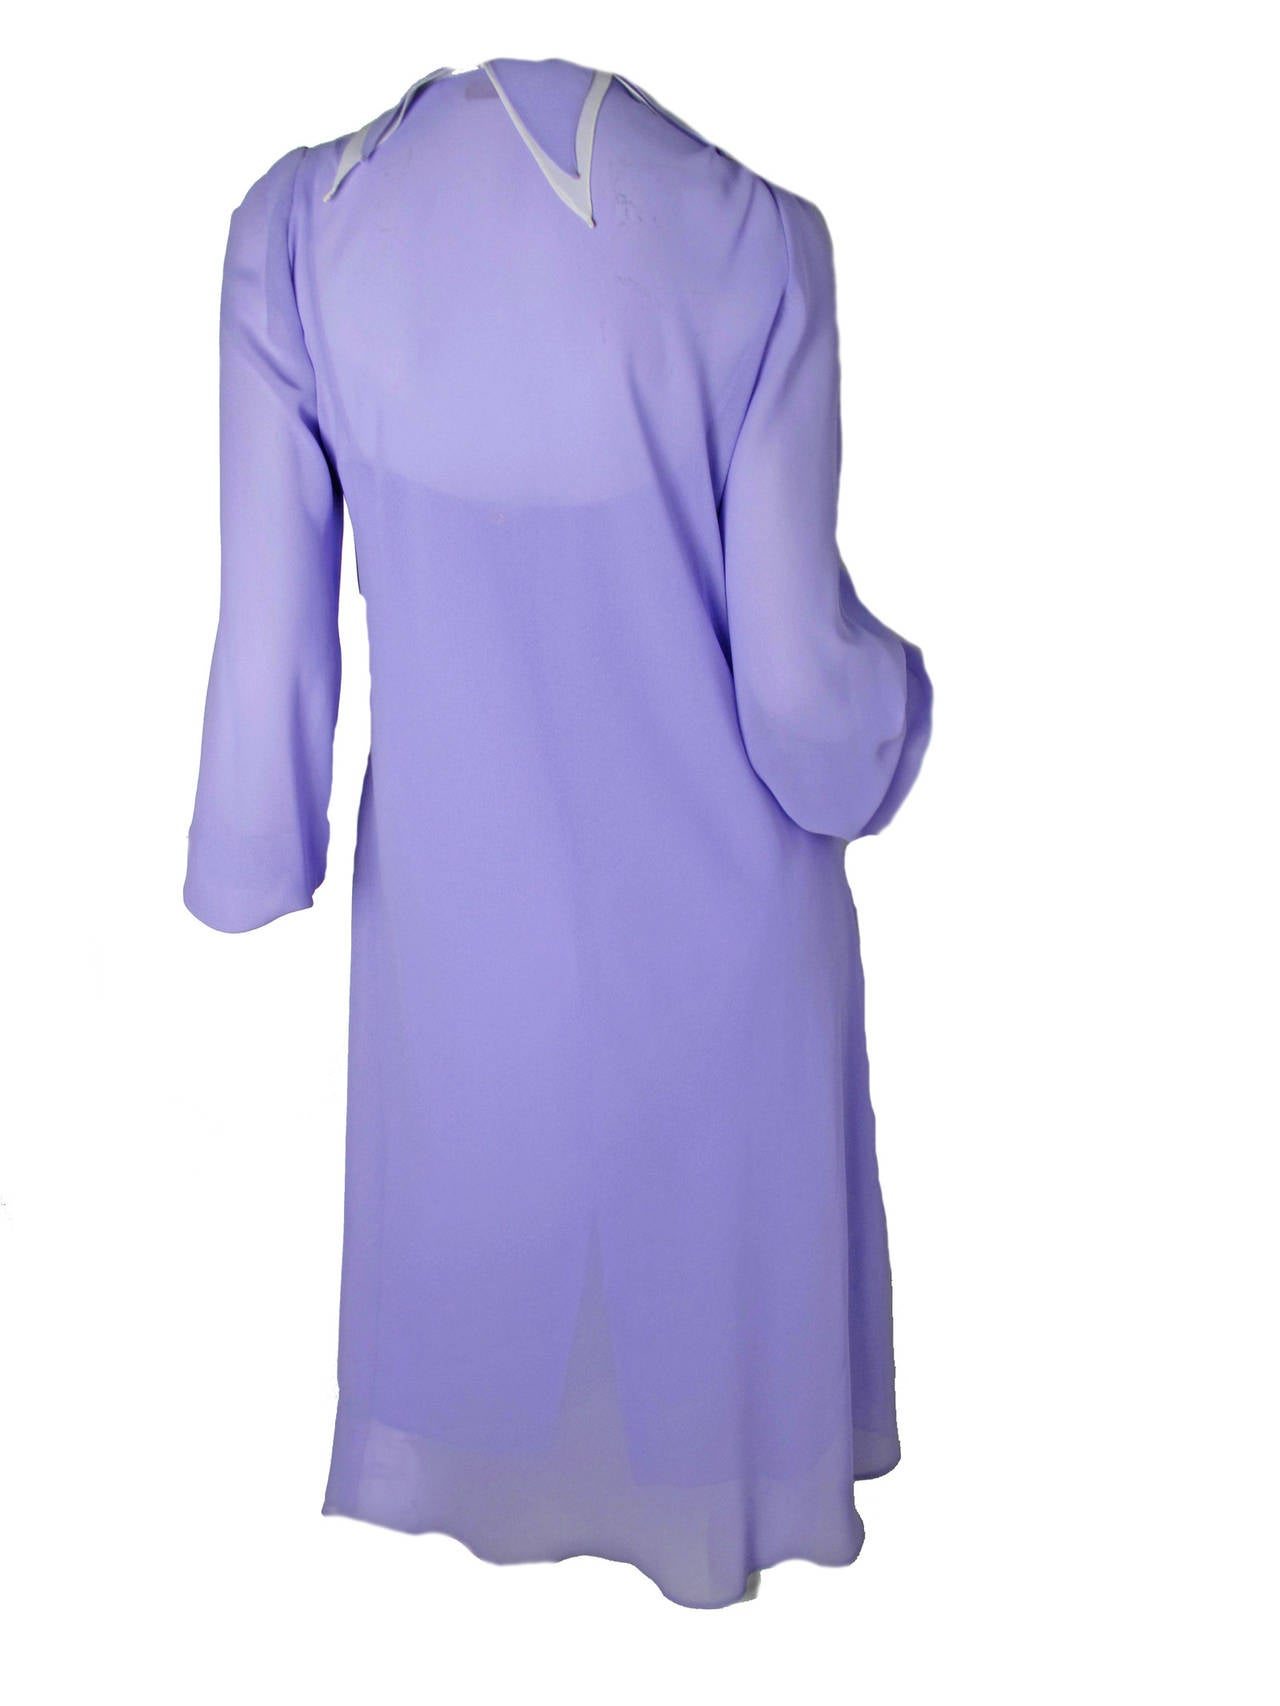 """Sant Angelo sheer purple dress with slip. Petal collar and tie.  No fabric label, possible silk blend. Condition: good, pull in fabric.  Slip: 32"""" bust, 31"""" waist, 36"""" hips, 40"""" length. Dress: 36"""" bust, 44"""" waist, 51"""" hips, 27 1/2"""" sleeve, 43 1/2"""""""